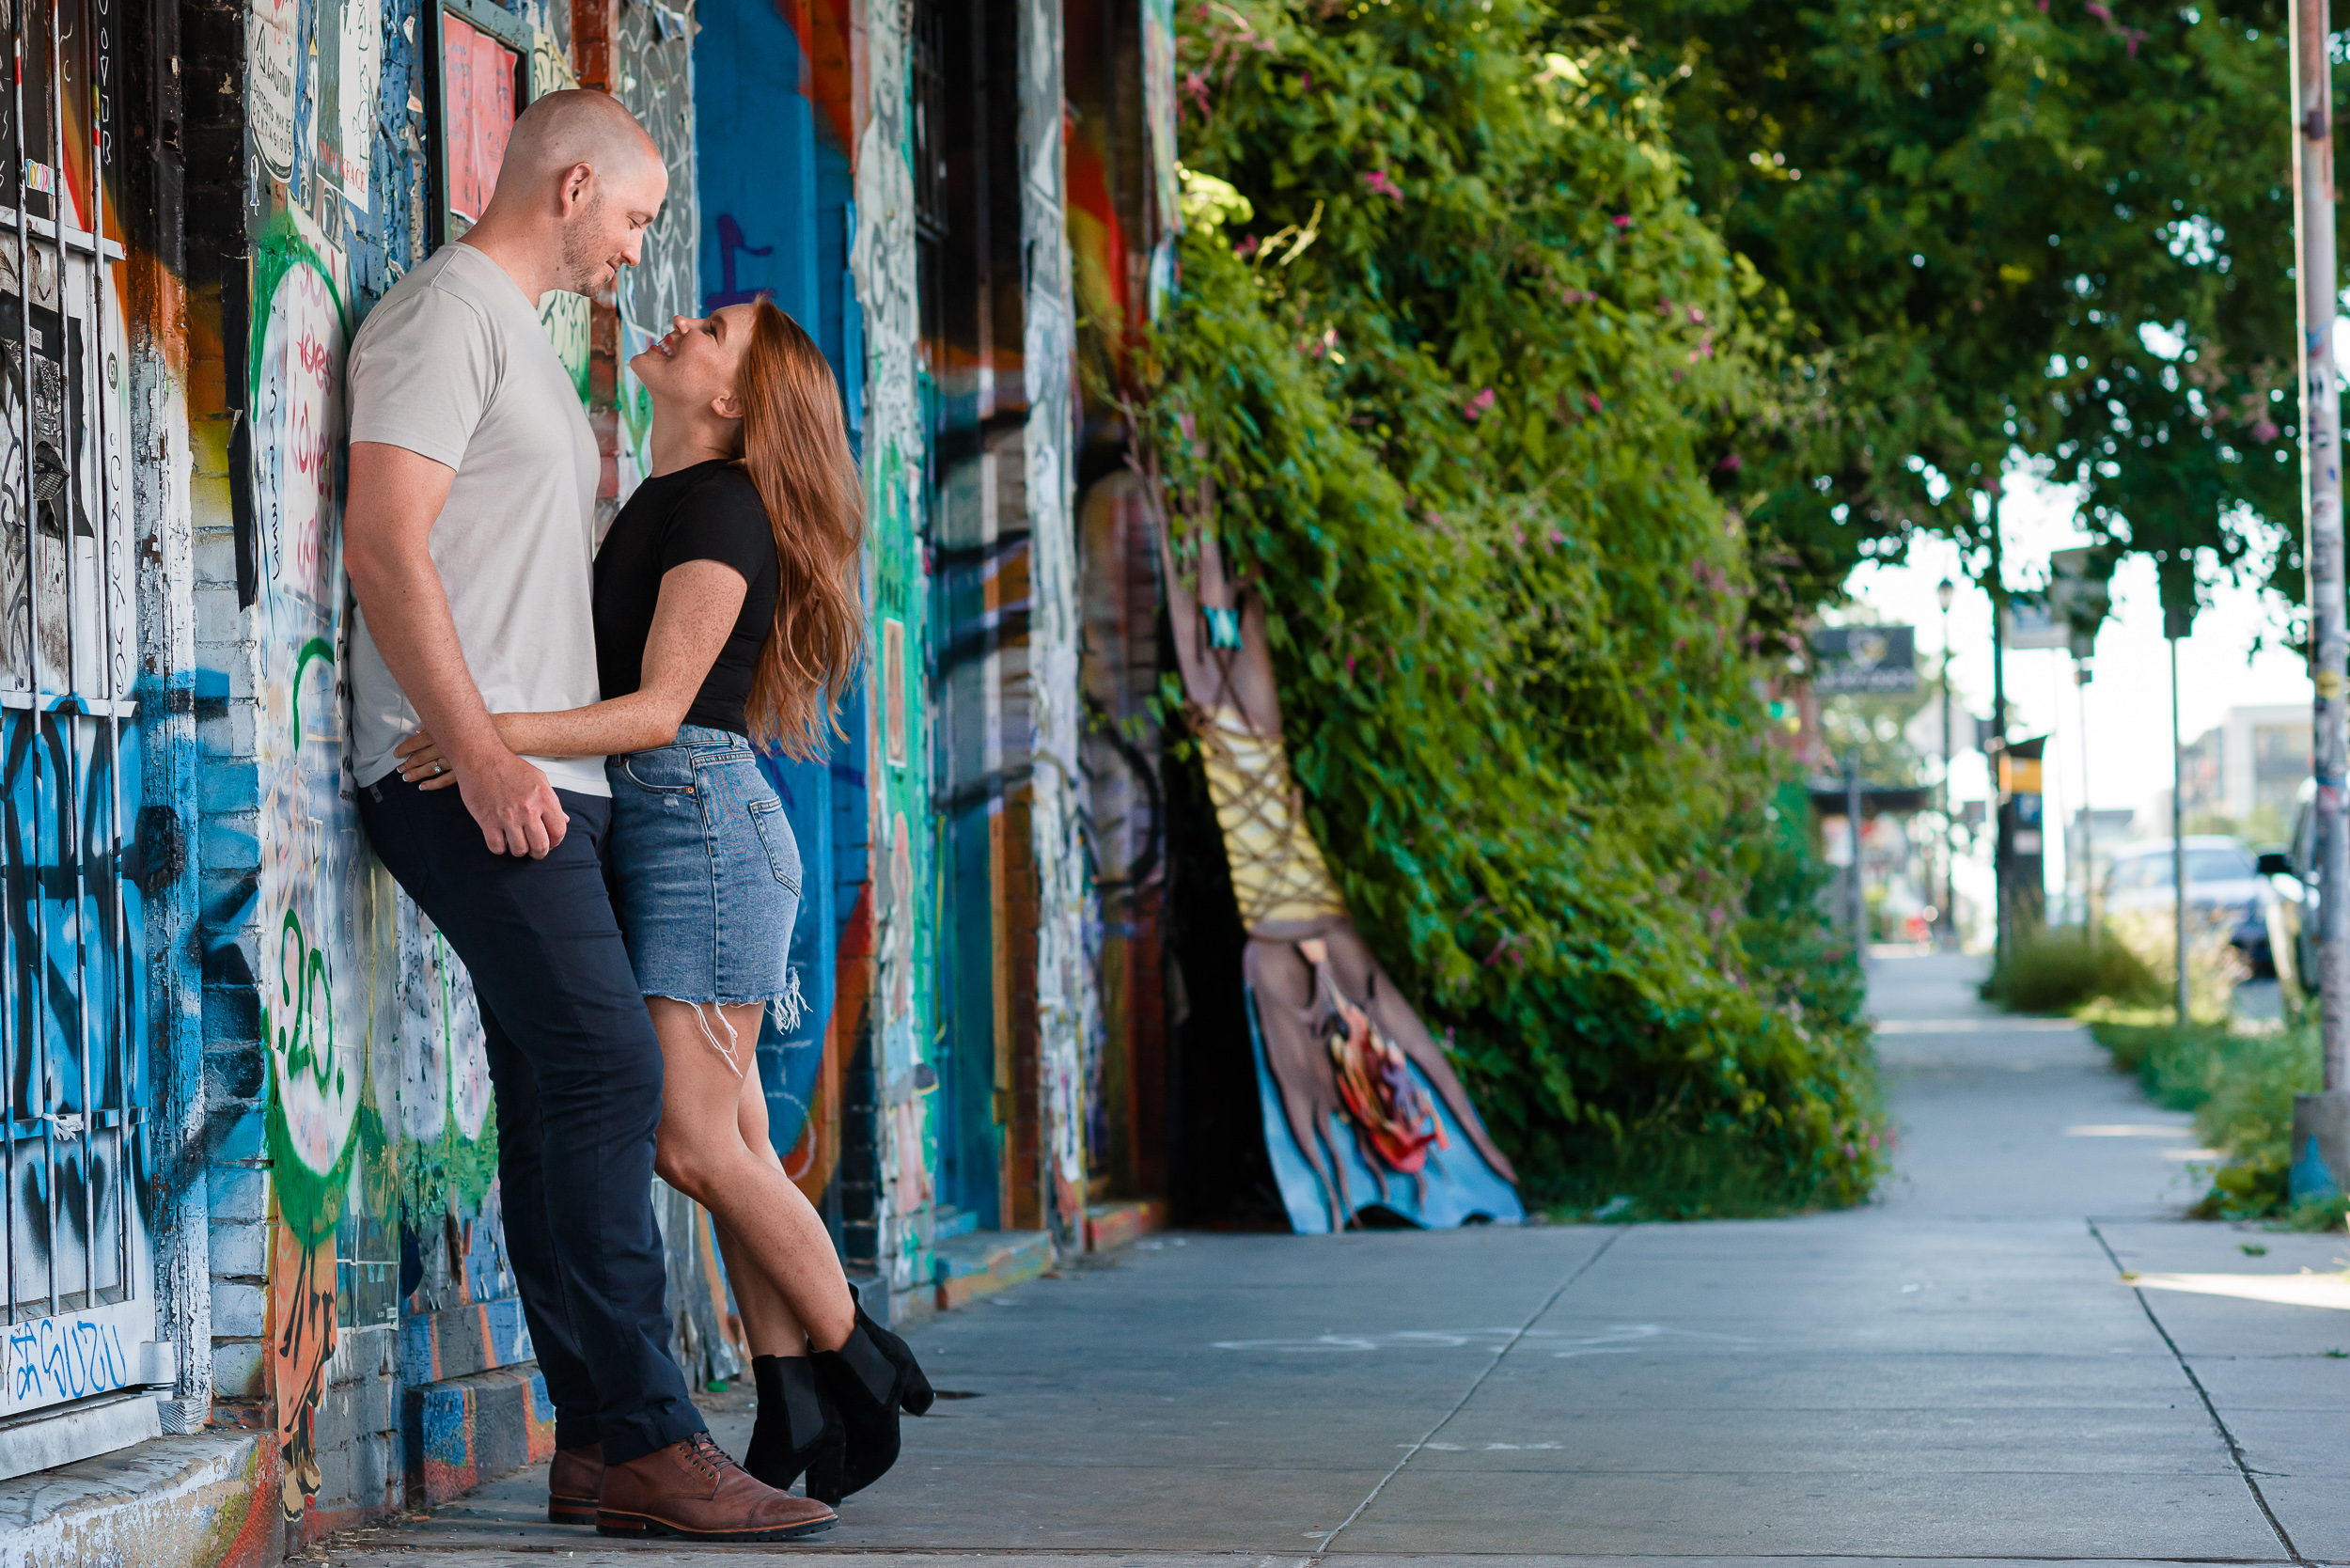 graffiti-engagement-couple-mural-austin-wedding-photographers-texas-colorful